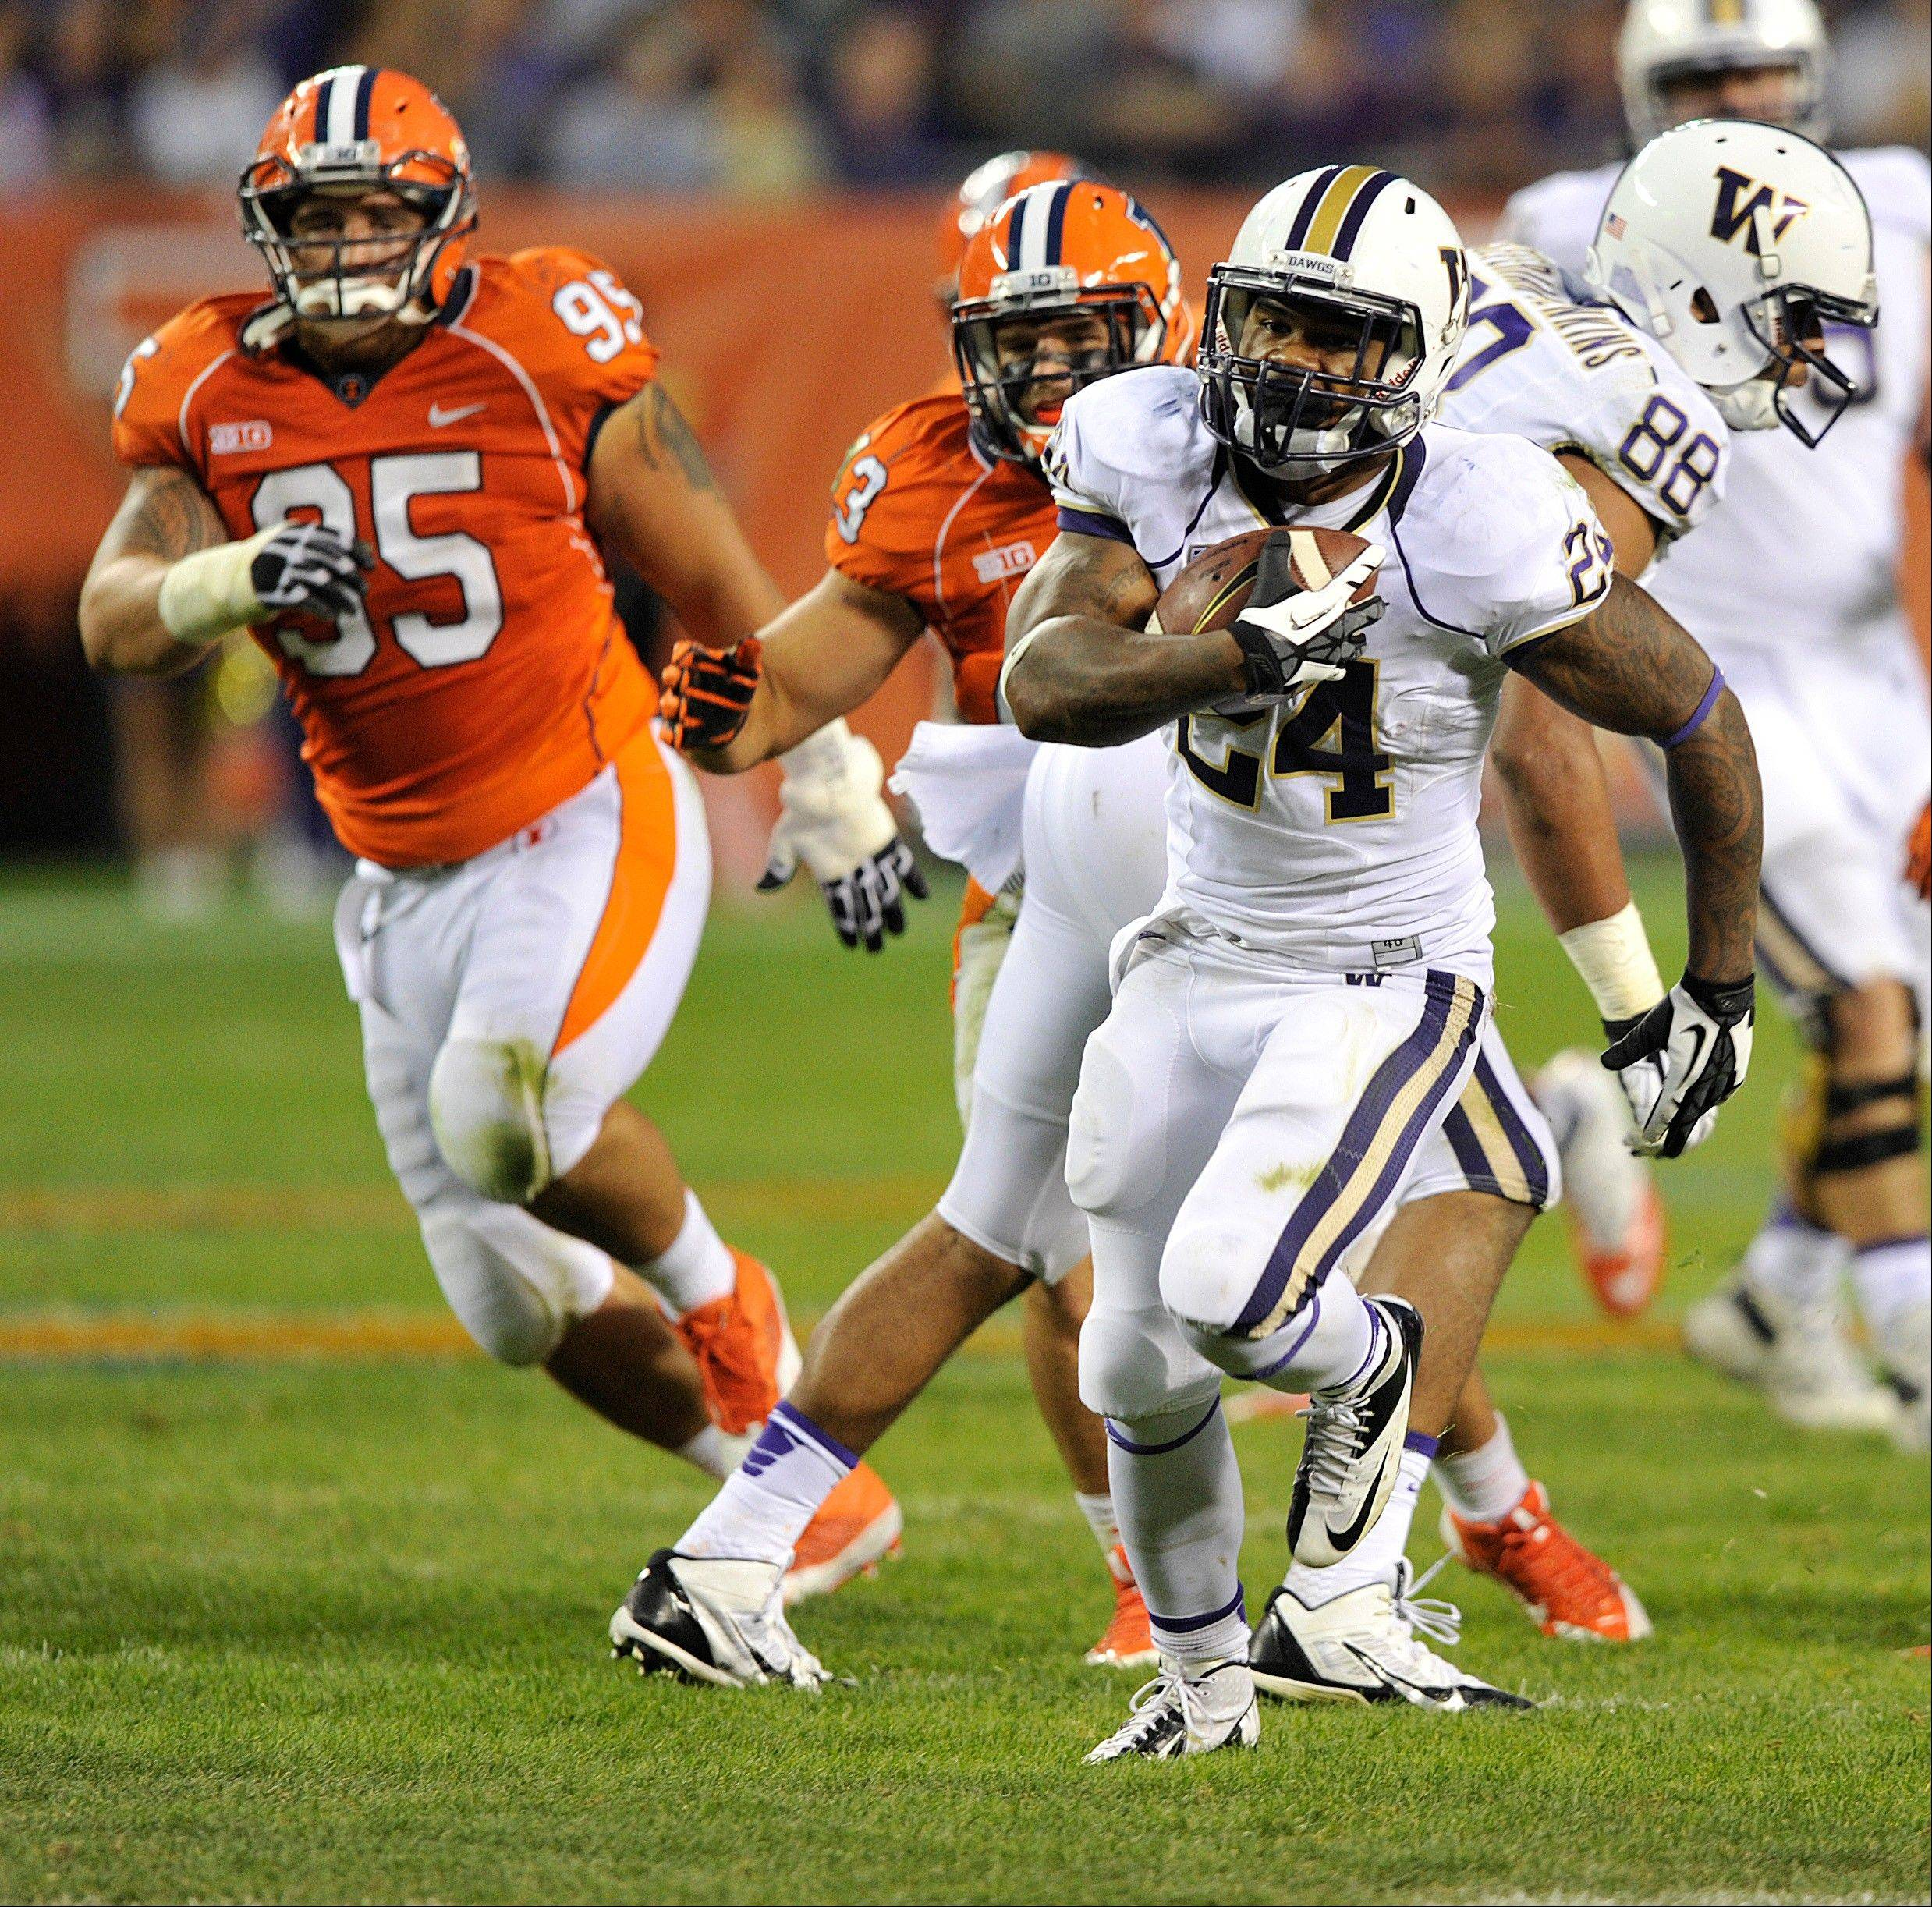 Washington�s Jesse Callier outruns the Illinois defense during the second half Saturday night at Soldier Field.